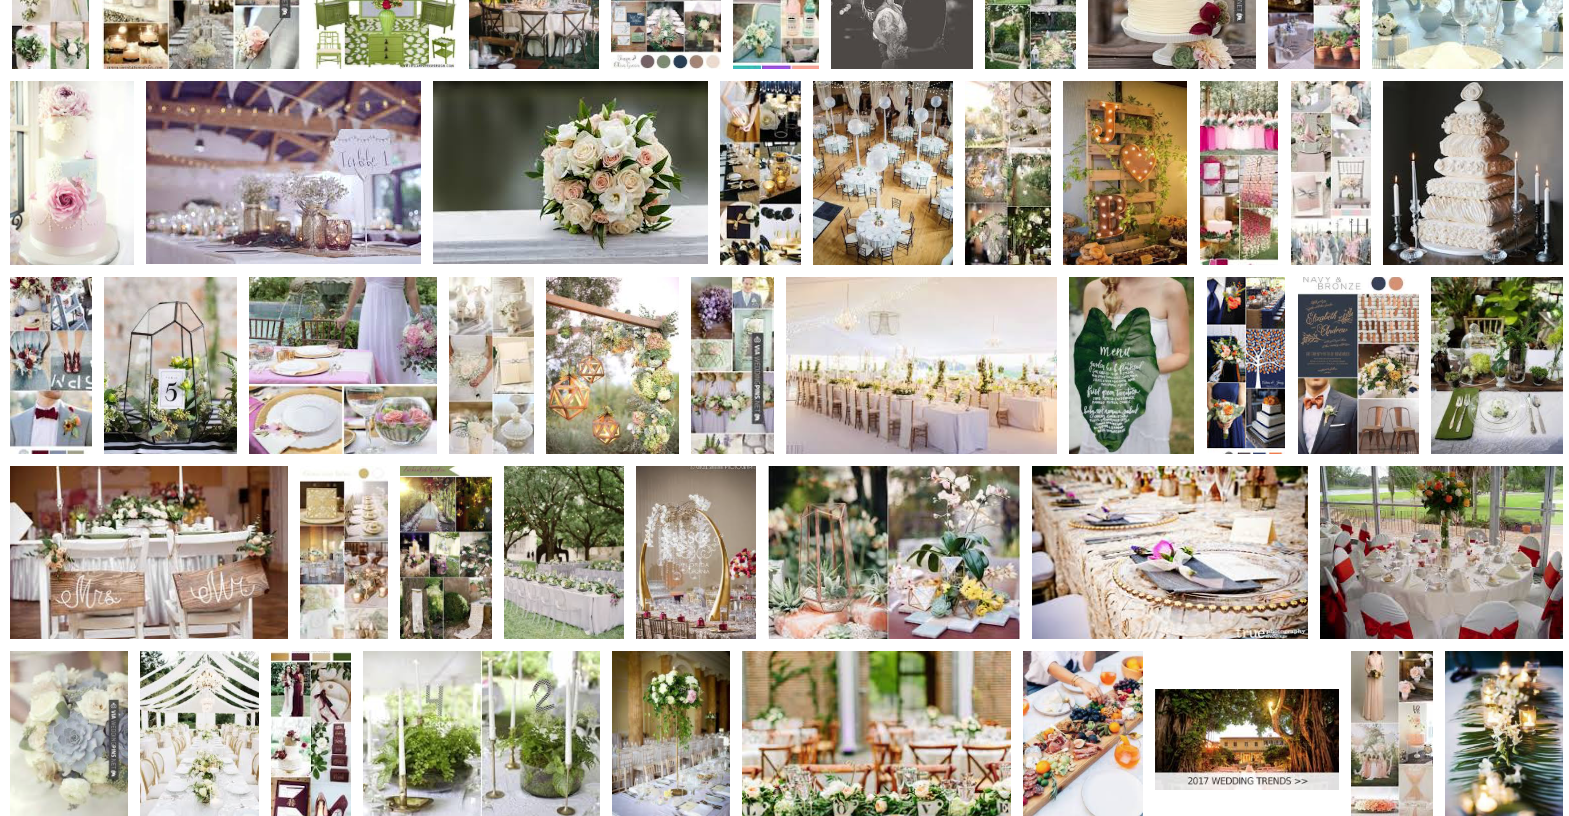 2018 trends going strong deejays event rentals we searched for 2017 wedding table decor trends and took a screenshot of what came up a glance at the image really says junglespirit Choice Image